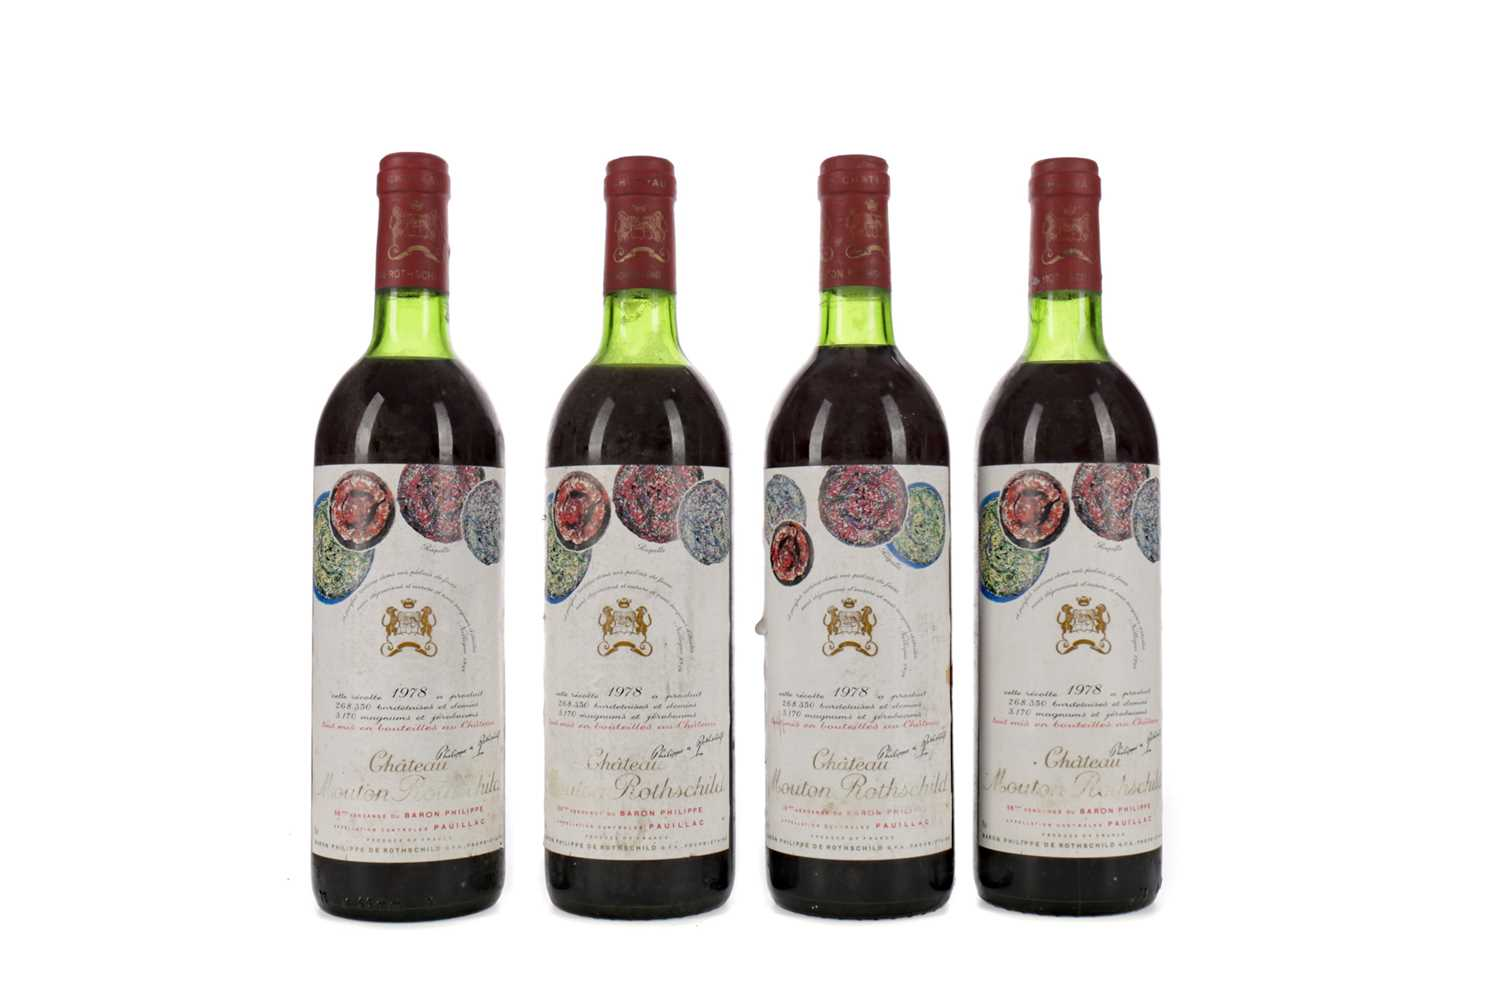 Lot 66 - FOUR BOTTLES OF CHATEAU MOUTON ROTHSCHILD 1978